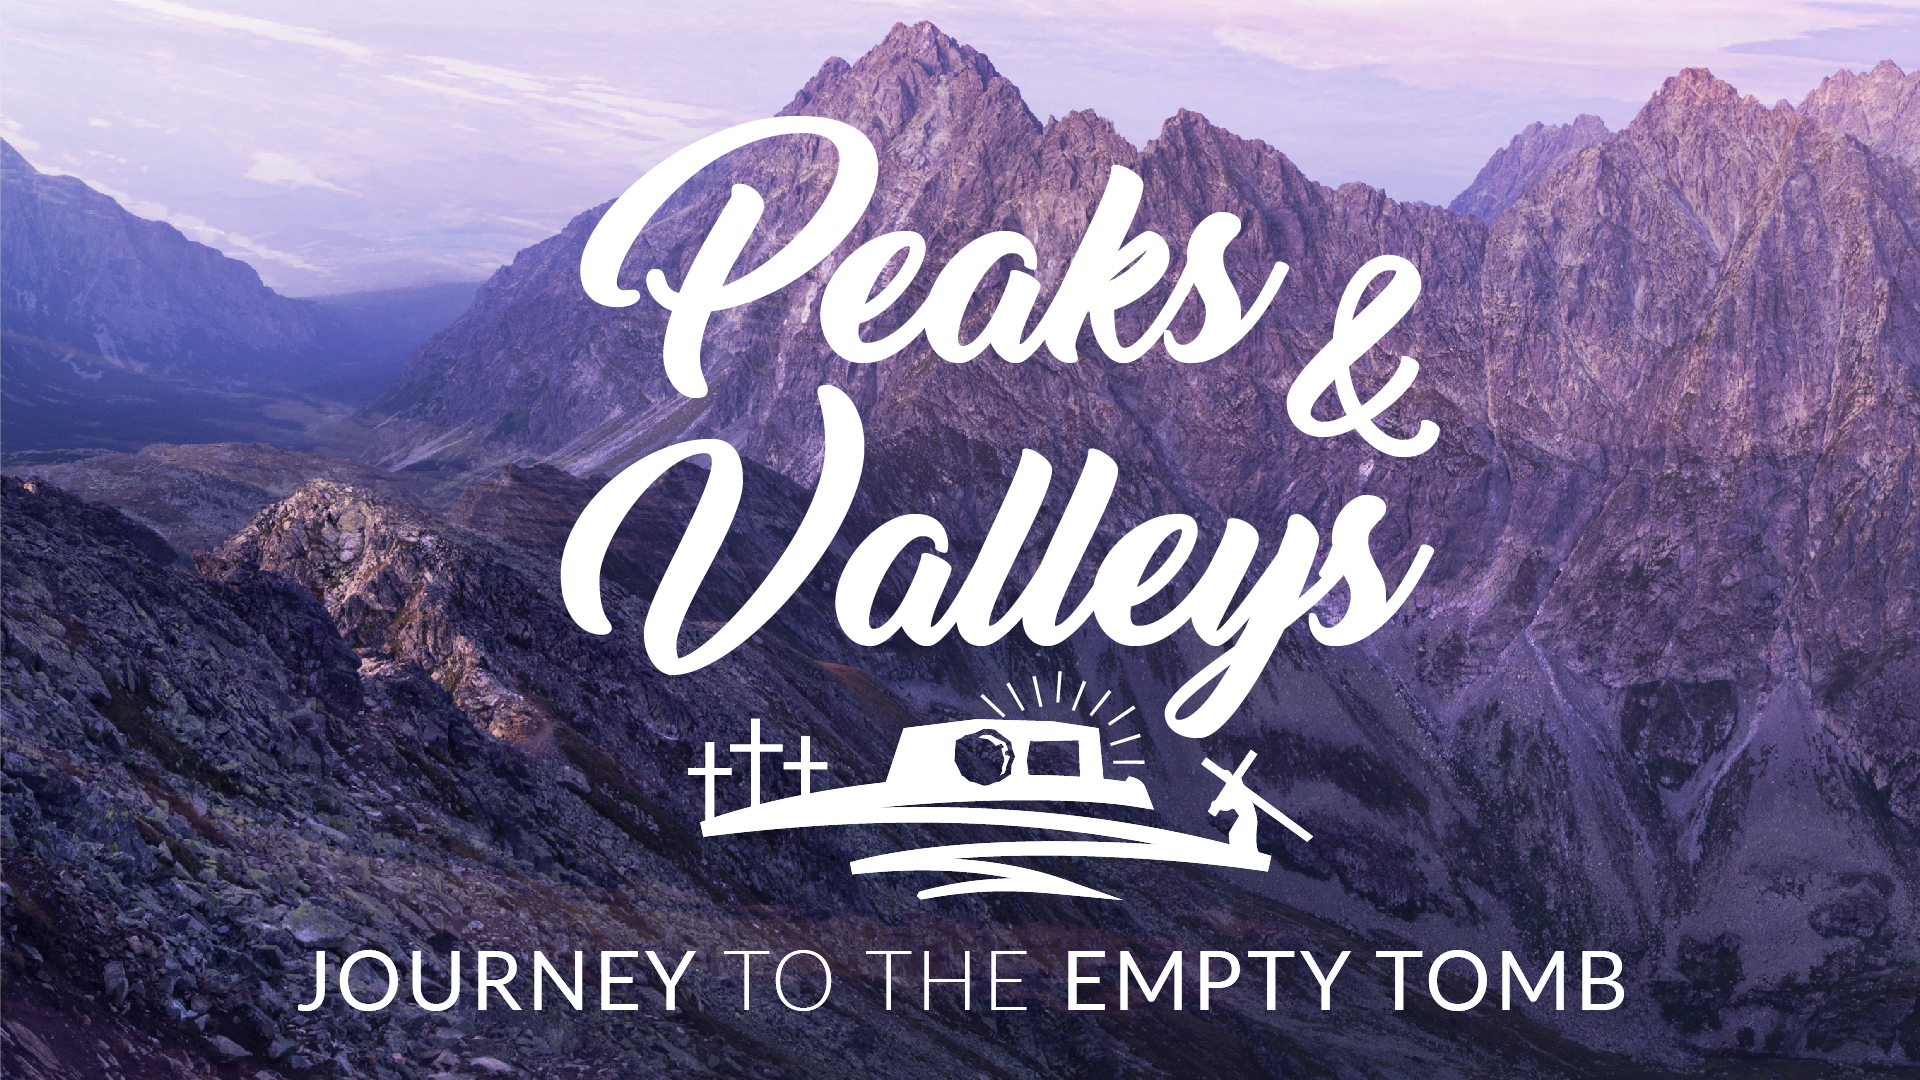 Peaks and Valleys: Journey to the Empty Tomb